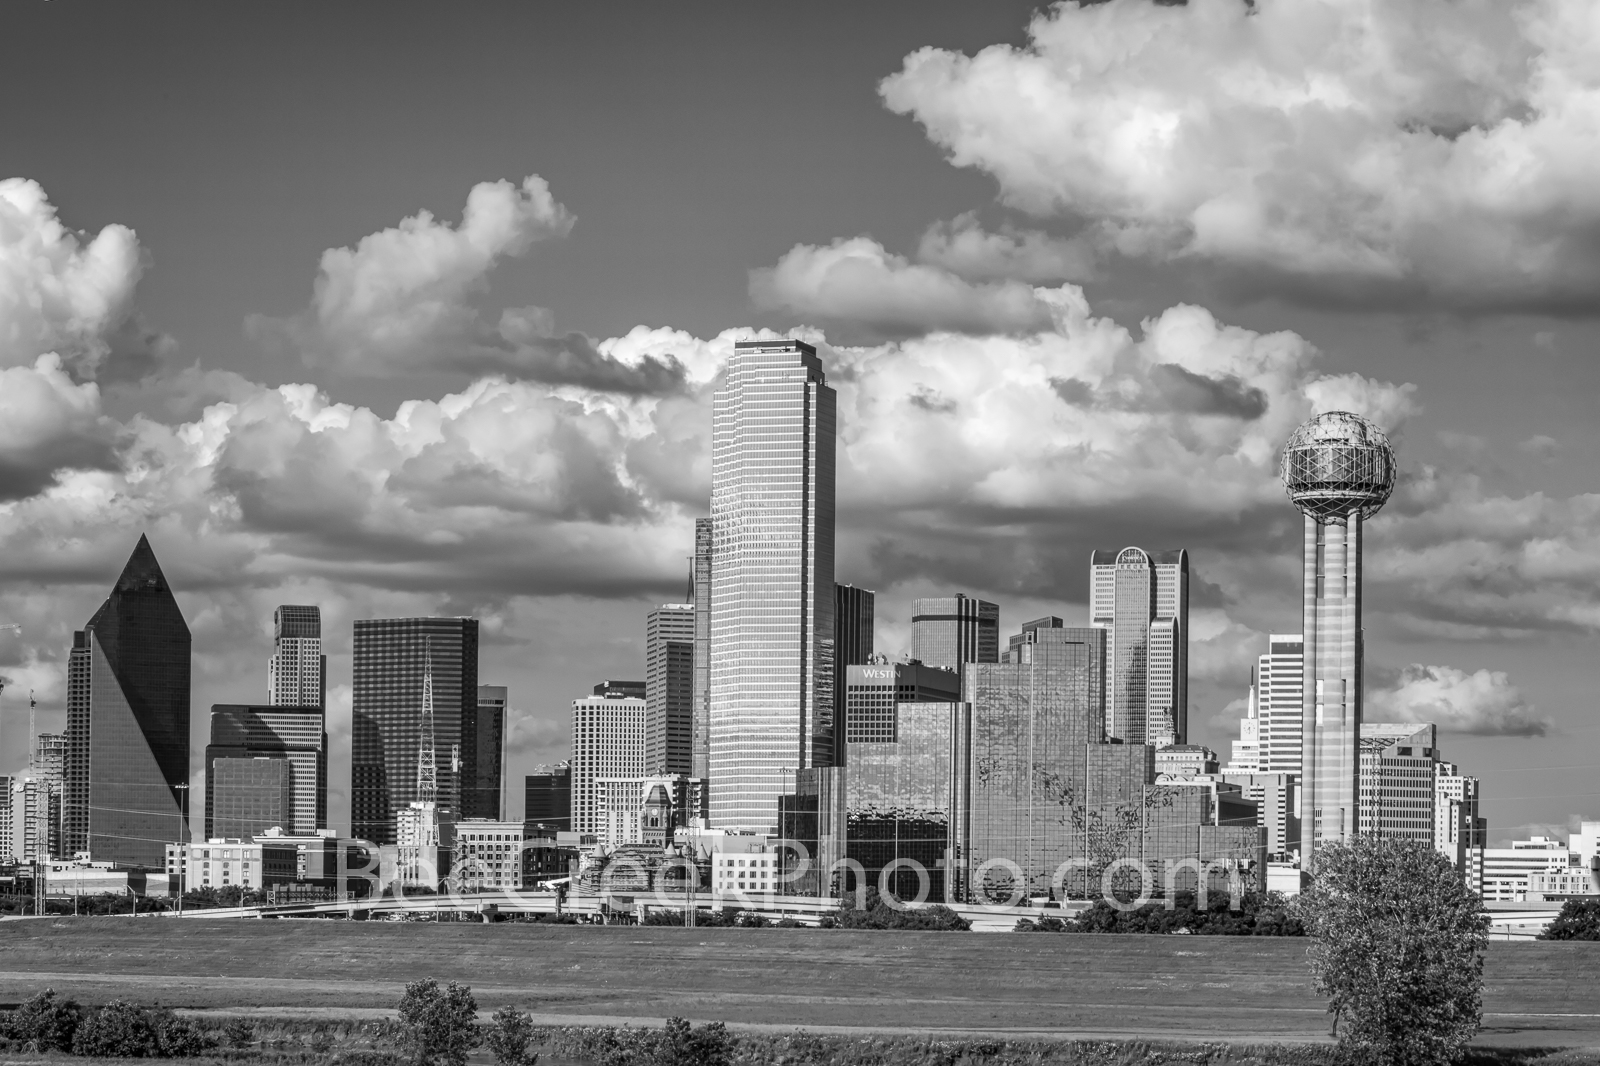 Dallas, dallas skyline, skyline,  downtown, city, high rise, skyscrapers, landscape, architecture, black and white, Reunion tower, bank of america, trinity river, , photo